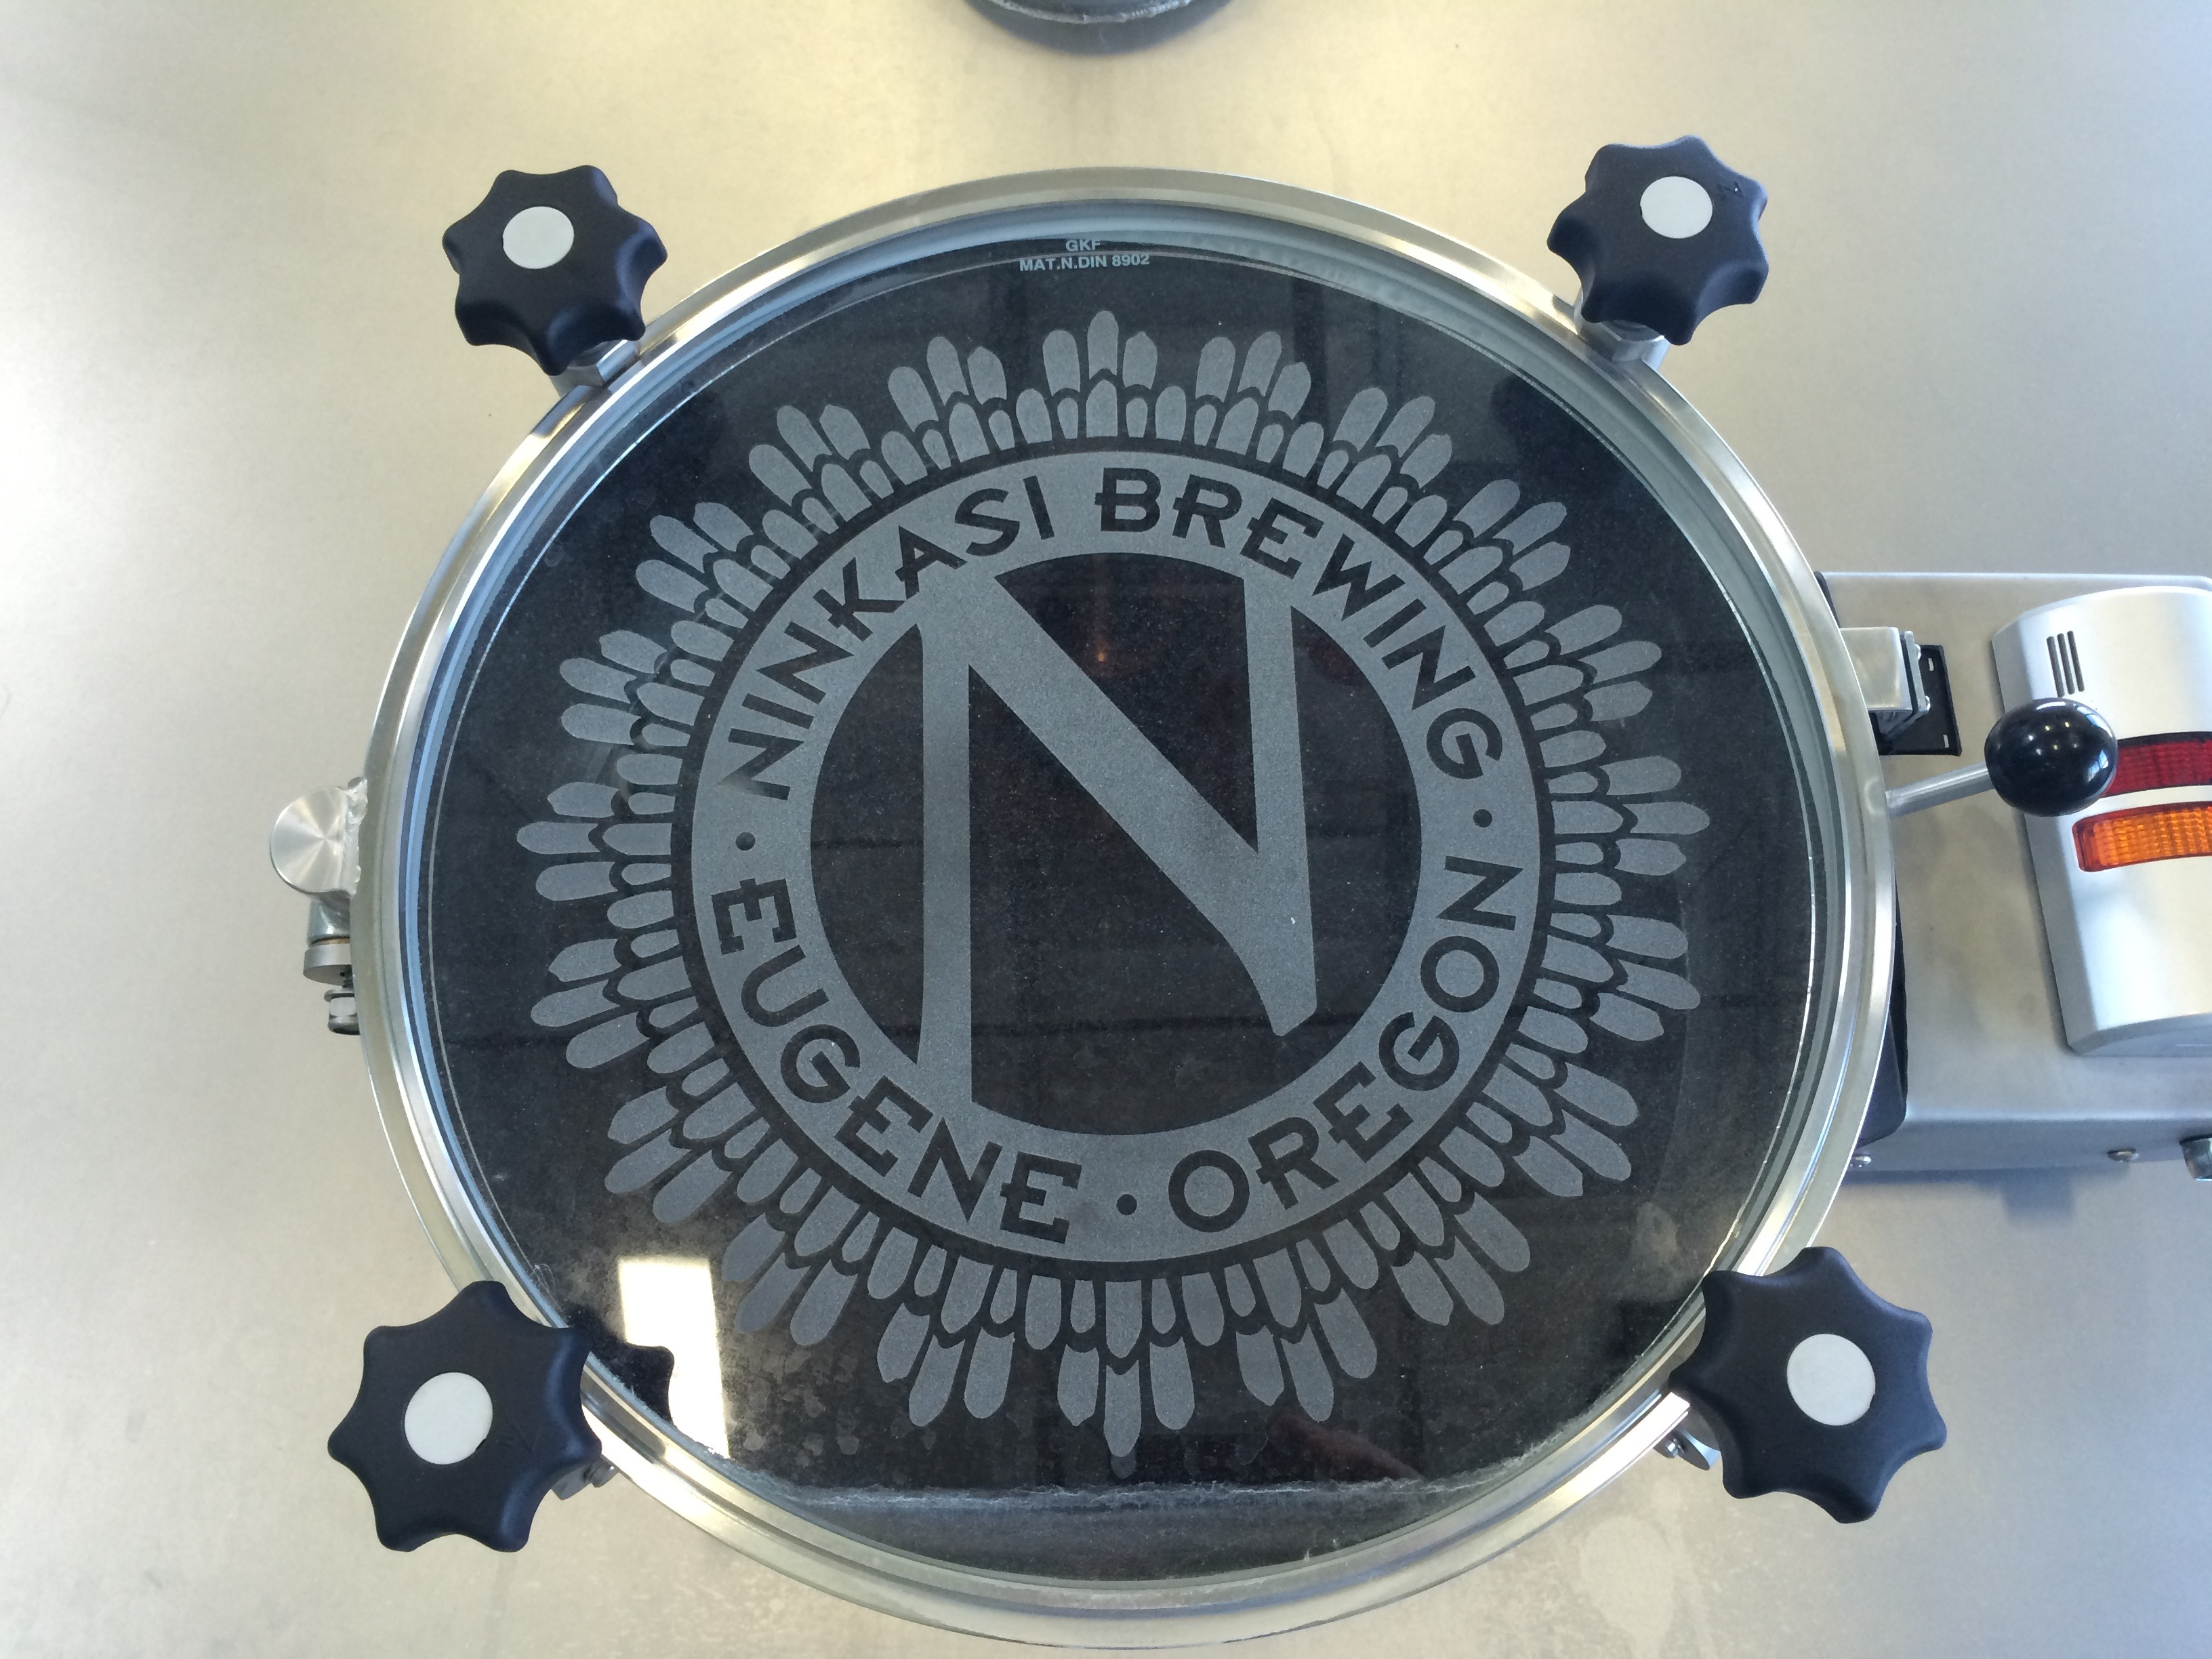 Ninkasi Brewing Tank Door